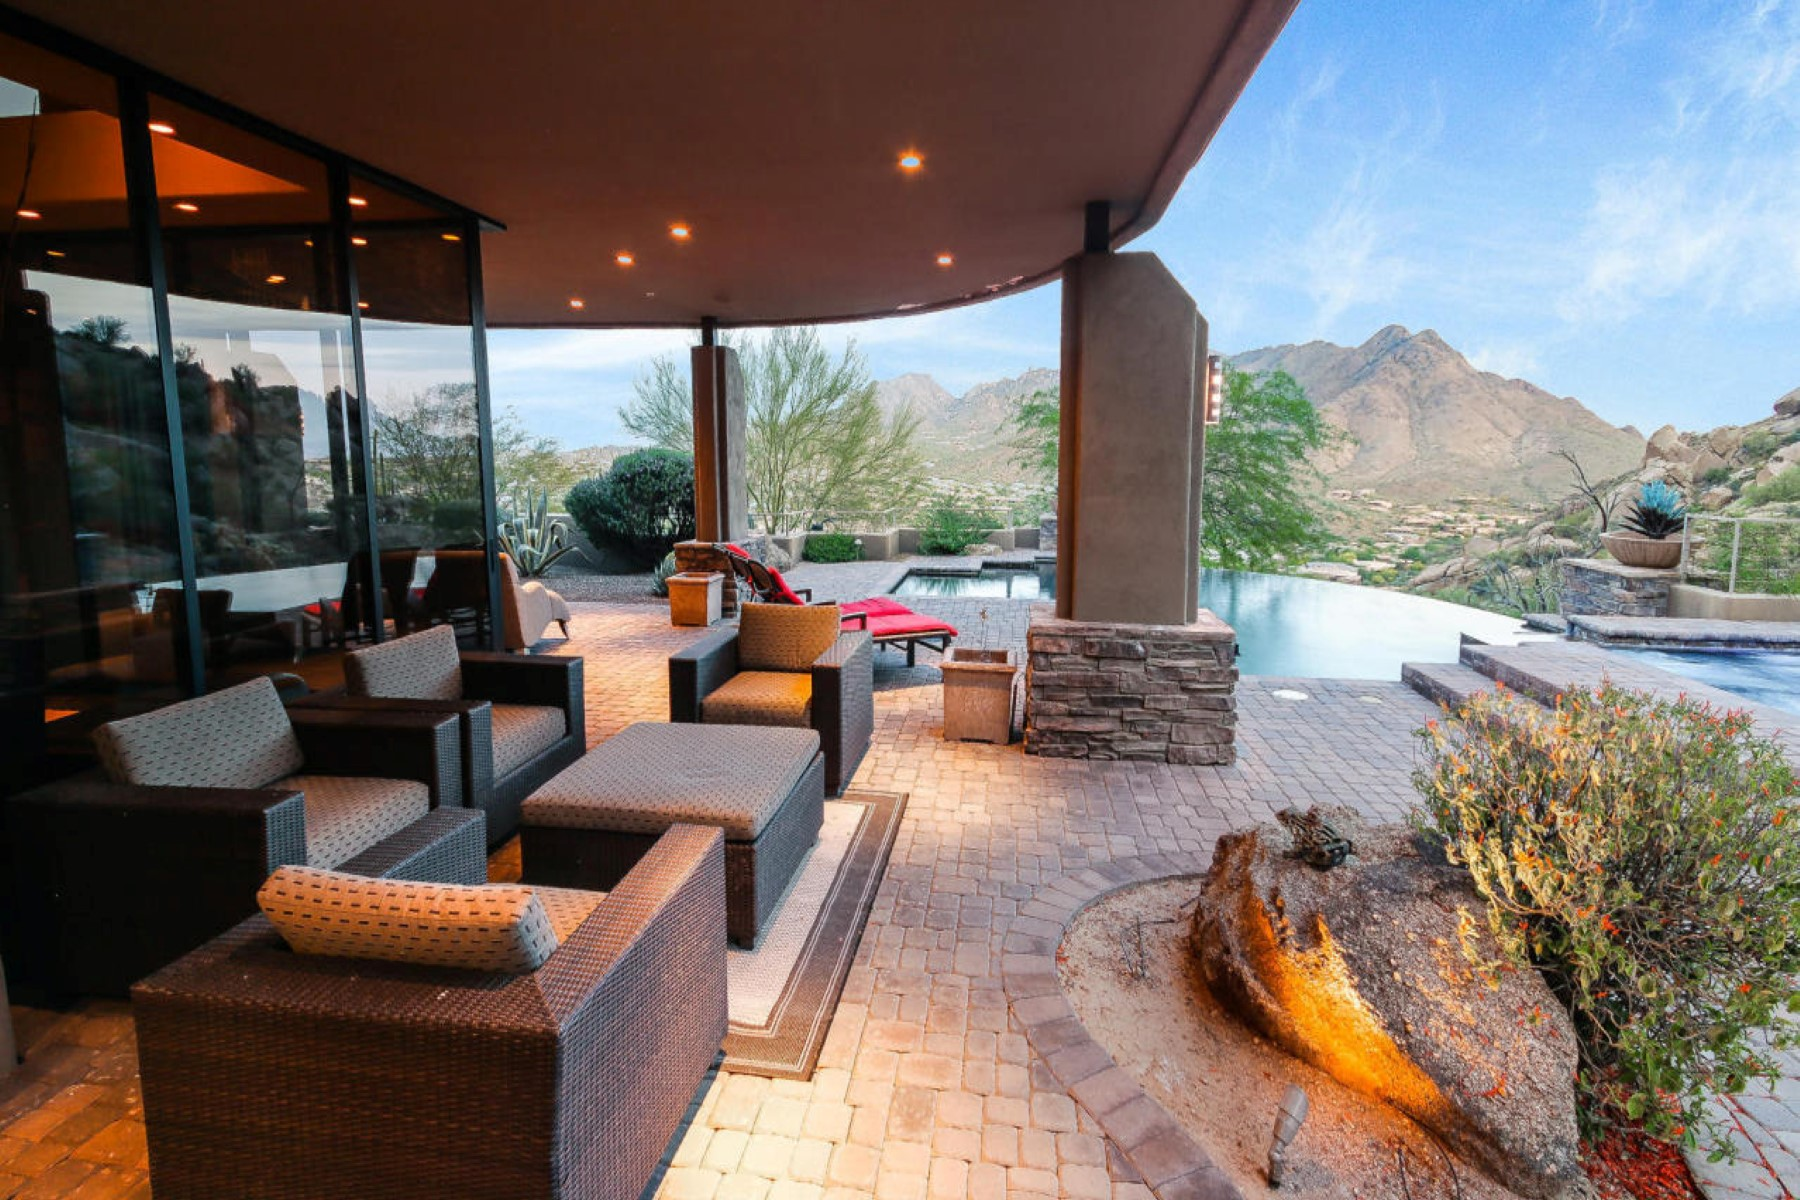 一戸建て のために 売買 アット Soft Custom Contemporary On One Of The Highest Elevation Lots On Troon Mountain 25132 N 114th Street Scottsdale, アリゾナ, 85255 アメリカ合衆国